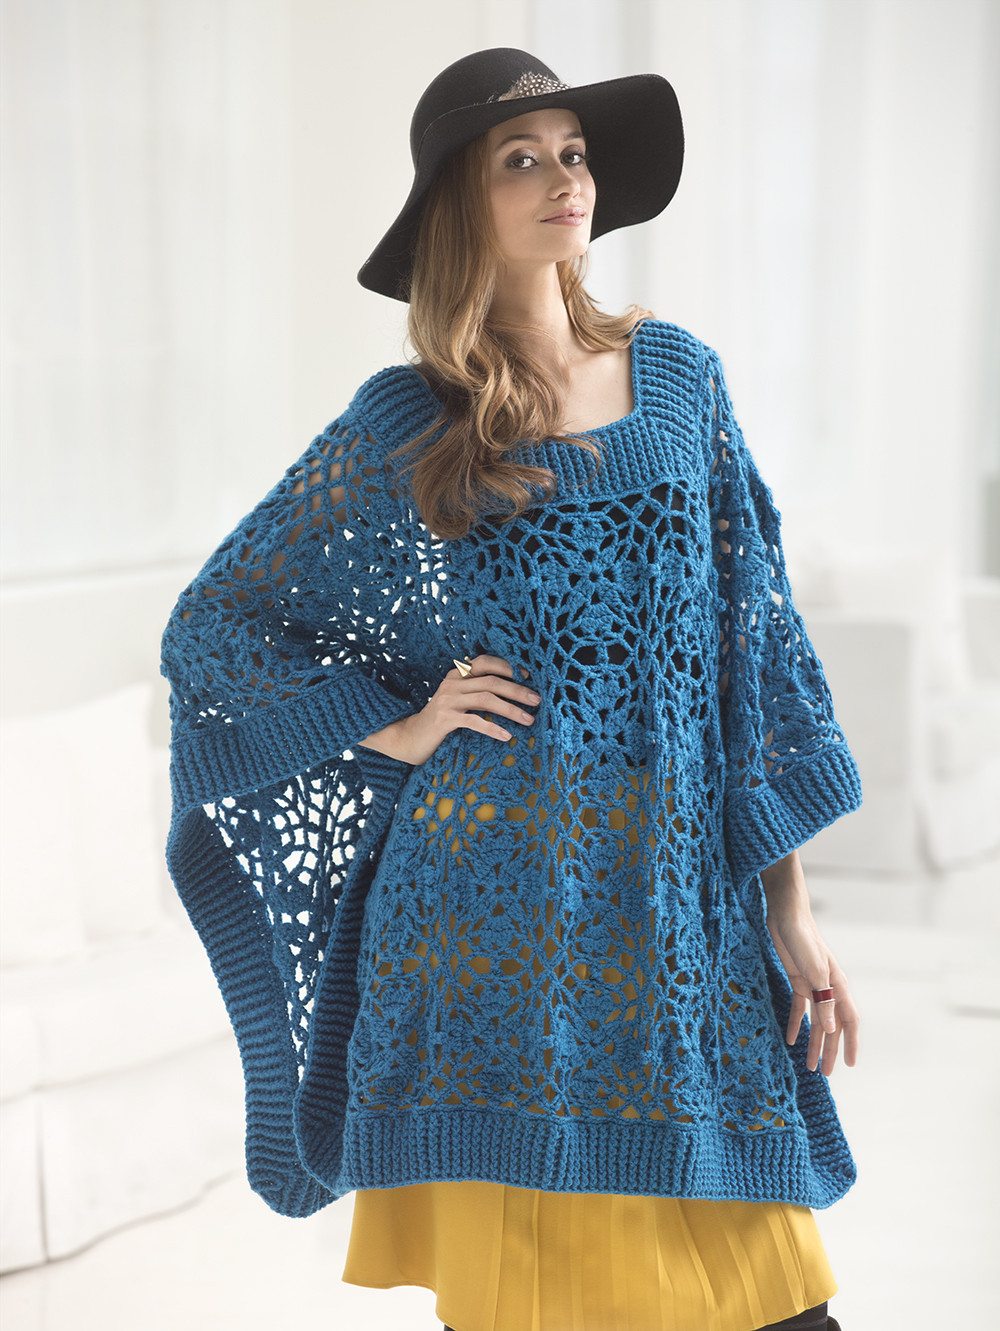 Free Crochet Poncho Patterns Lovely Our Favorite Crochet Sweater Kits for Mom and Baby Of Wonderful 50 Images Free Crochet Poncho Patterns